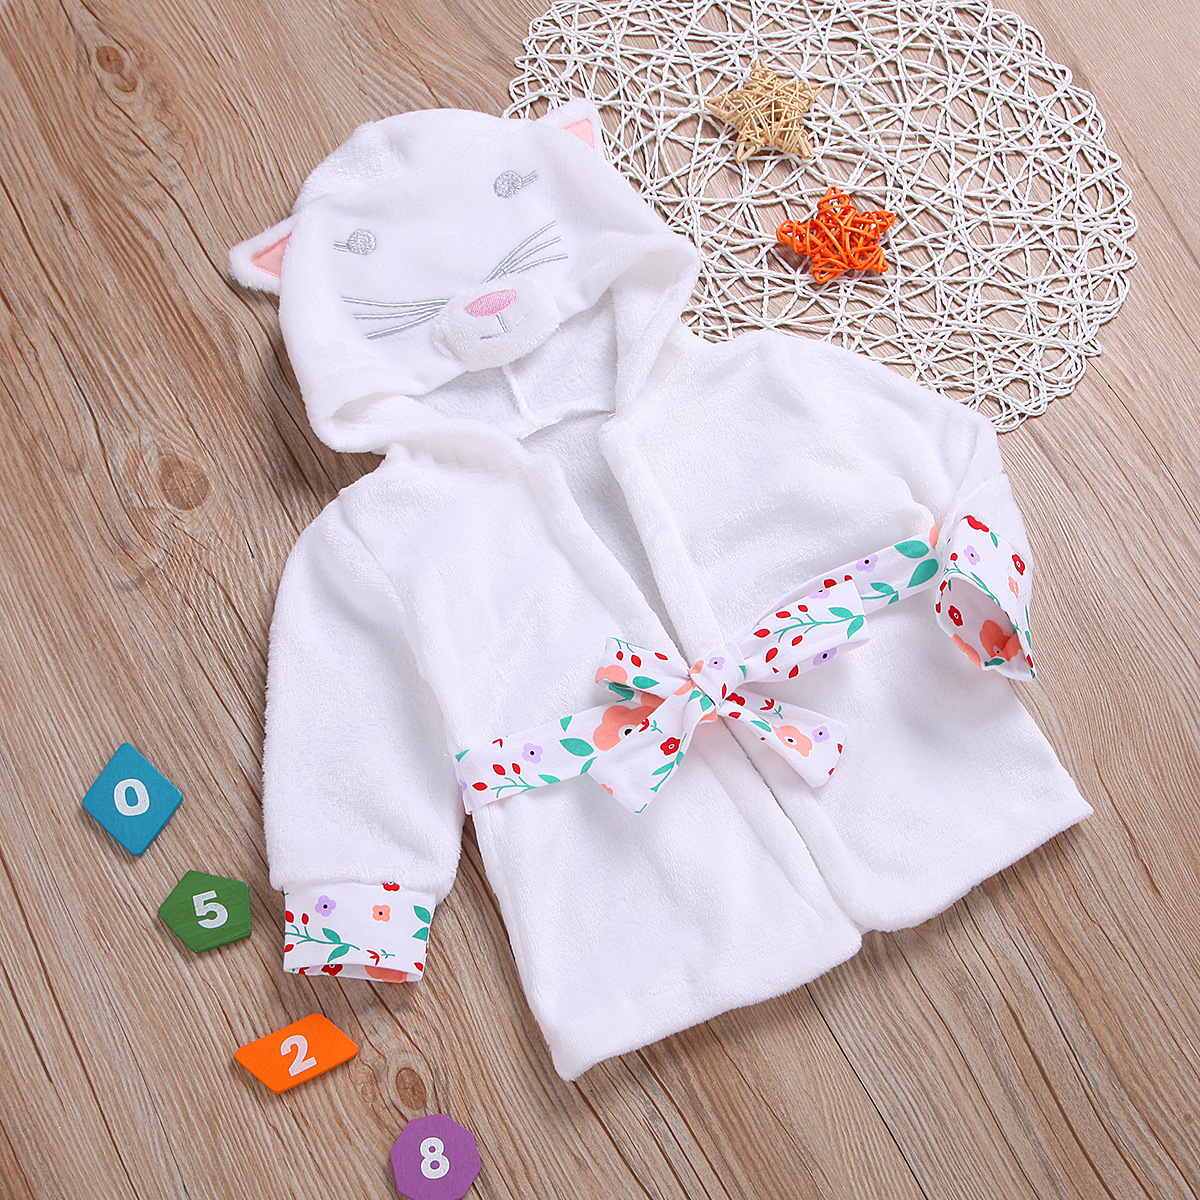 Hot Selling Childrenswear White Cartoon Cute Cat Hooded Long Sleeve Women's Robes Children Tracksuit Pure Cotton Pajamas